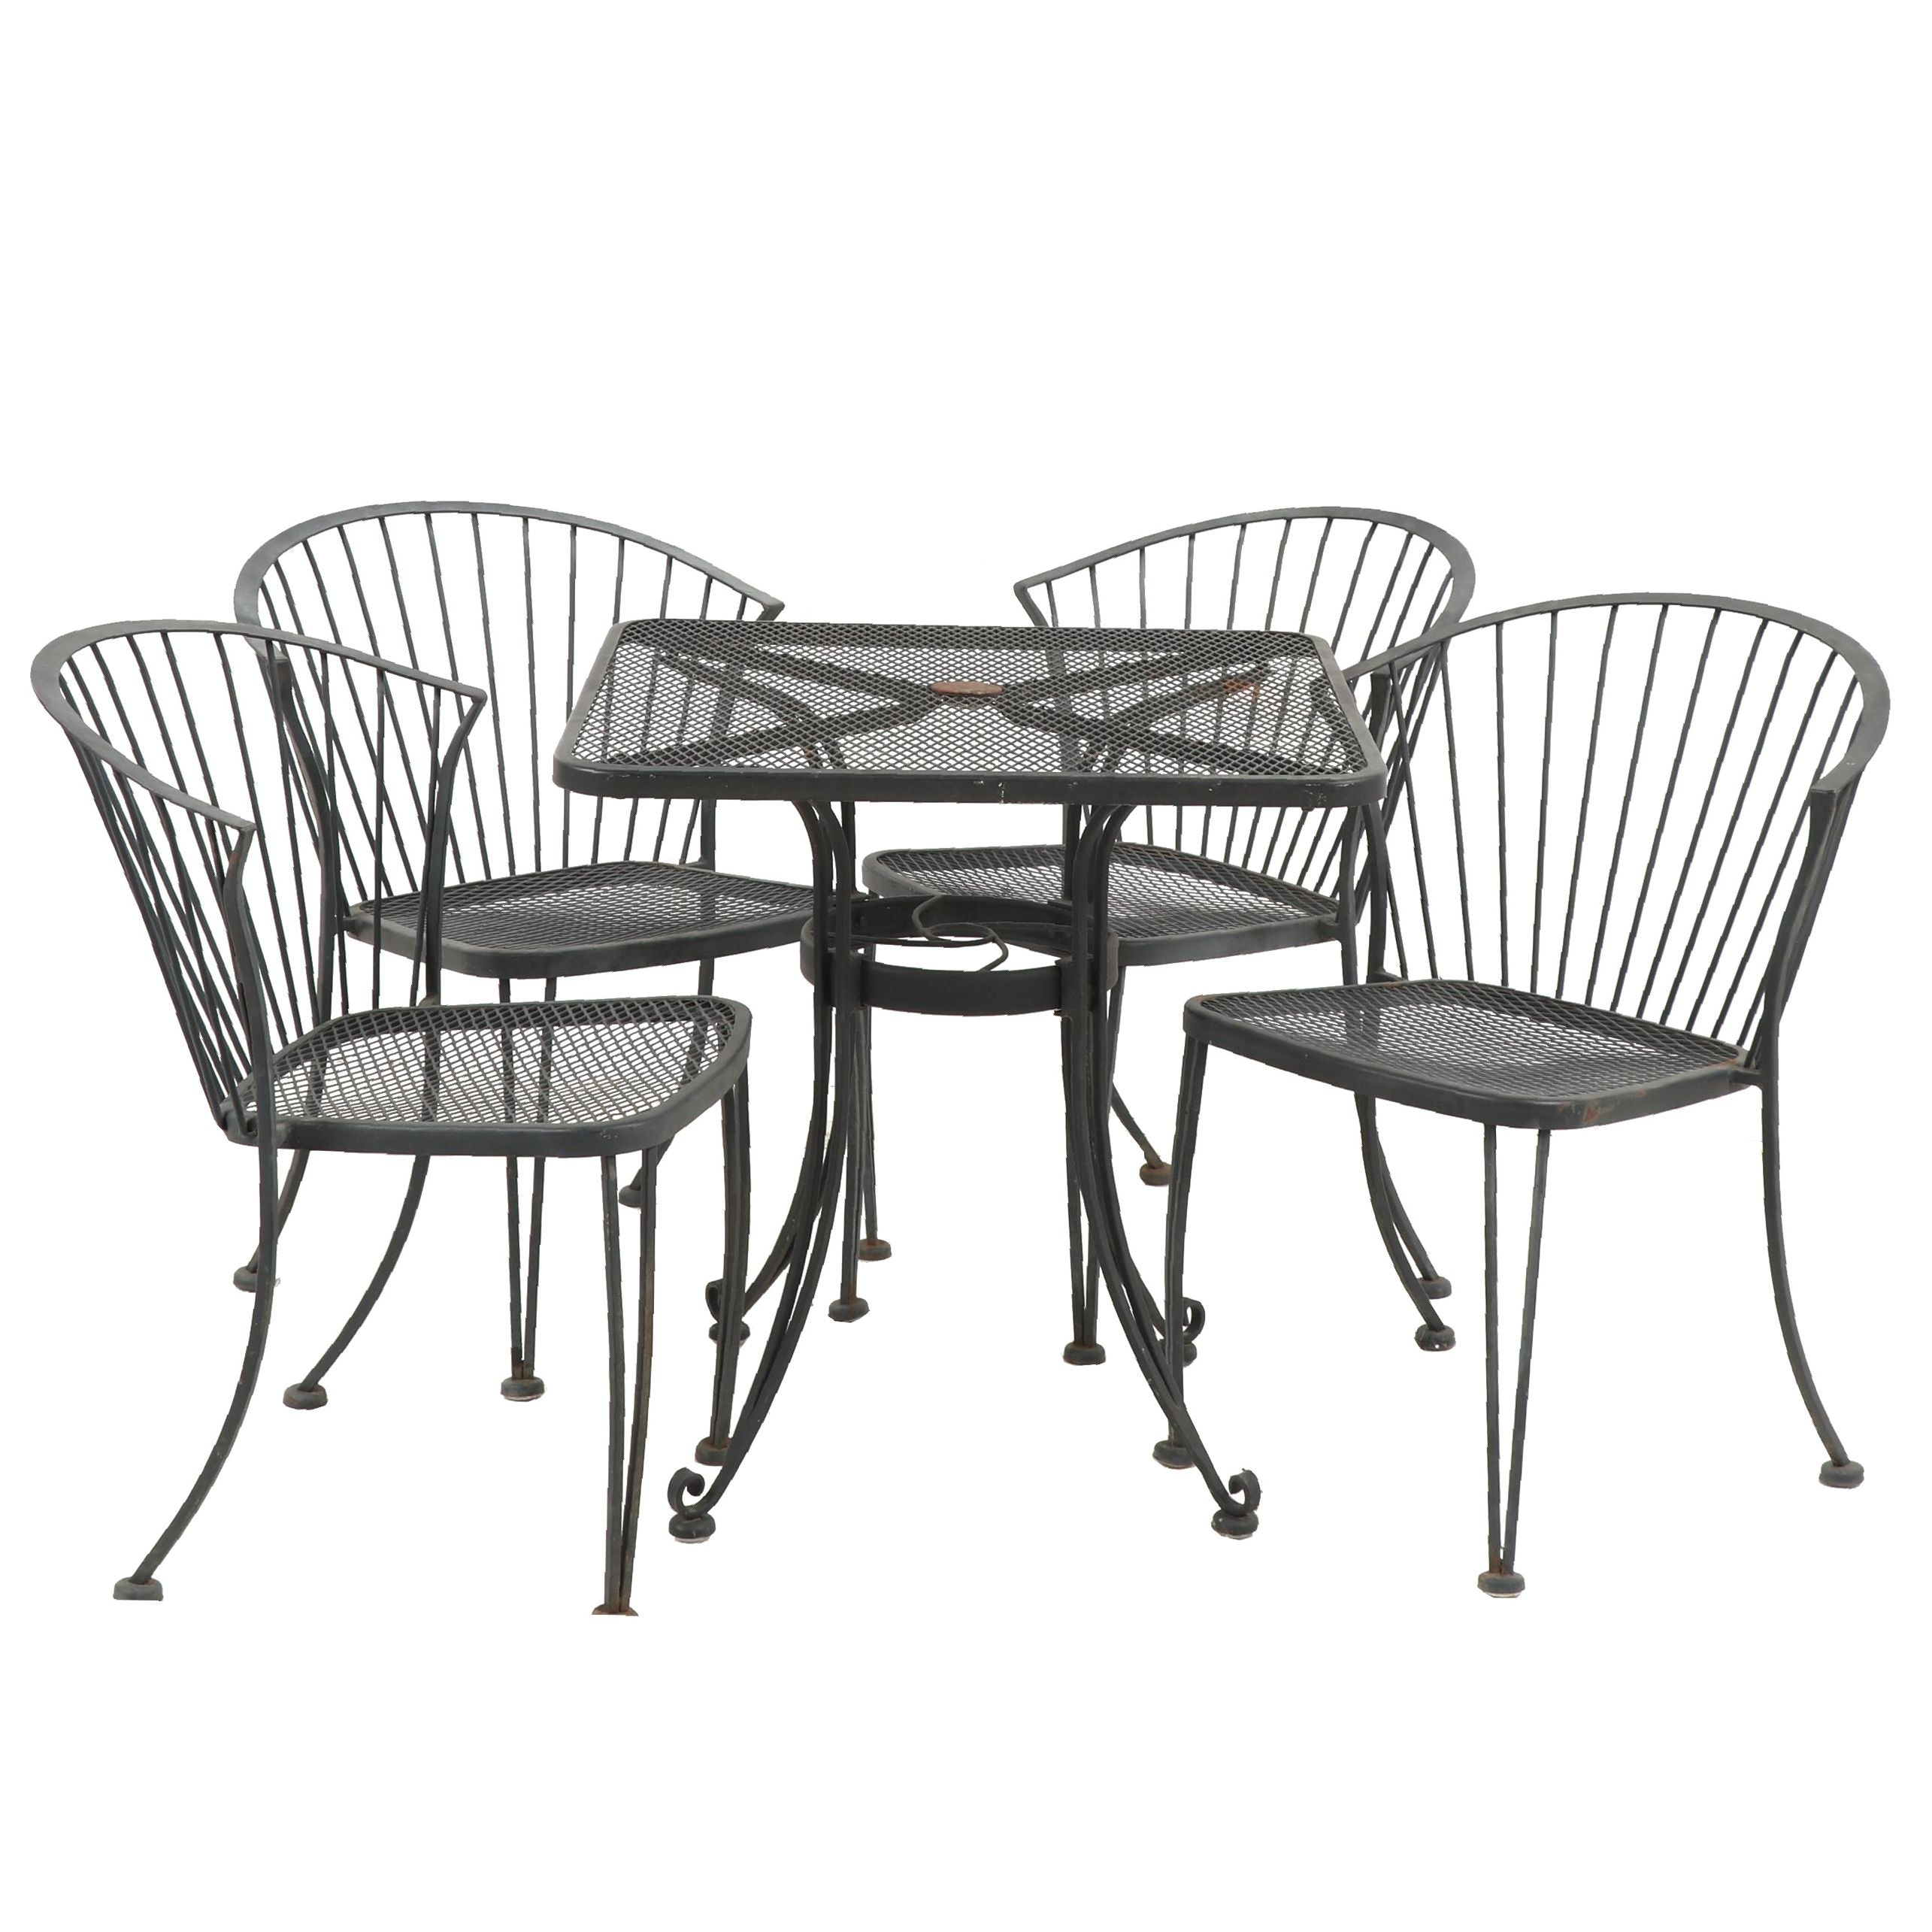 Four Metal Patio Chairs and Table